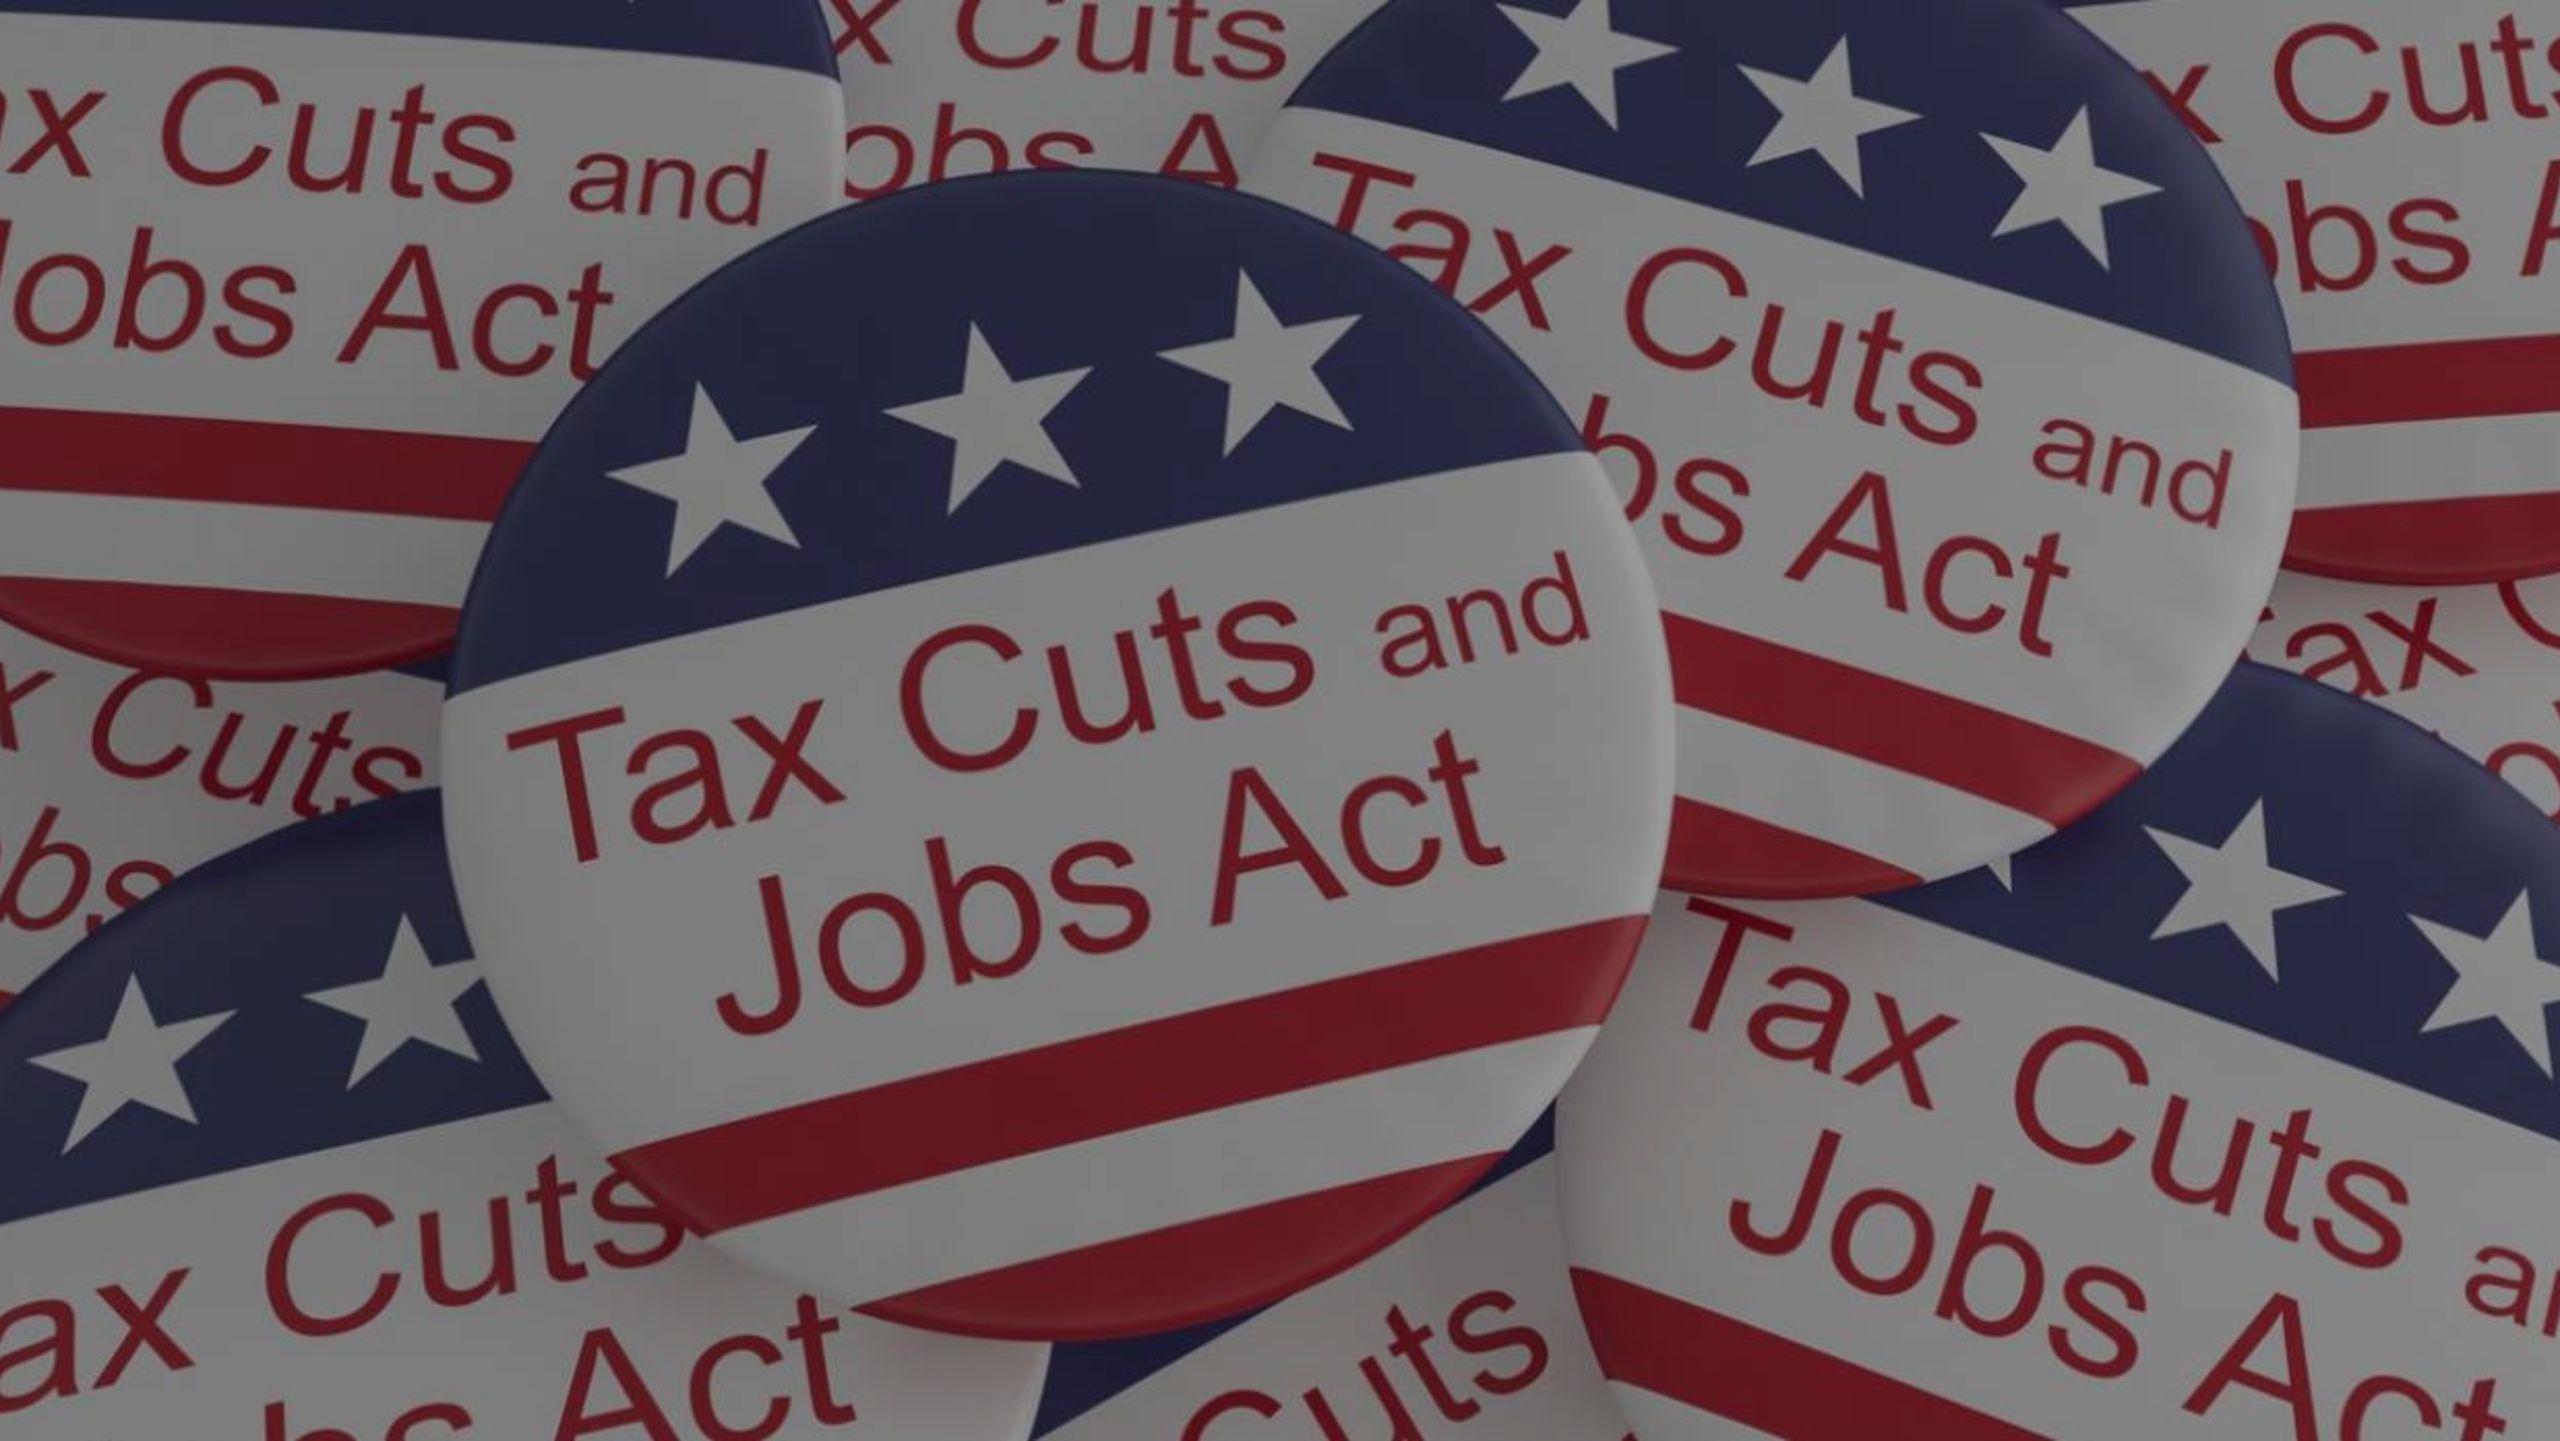 PART 2: HOW THE NEW TAX PLAN MAY HELP PROPERTY OWNERS!